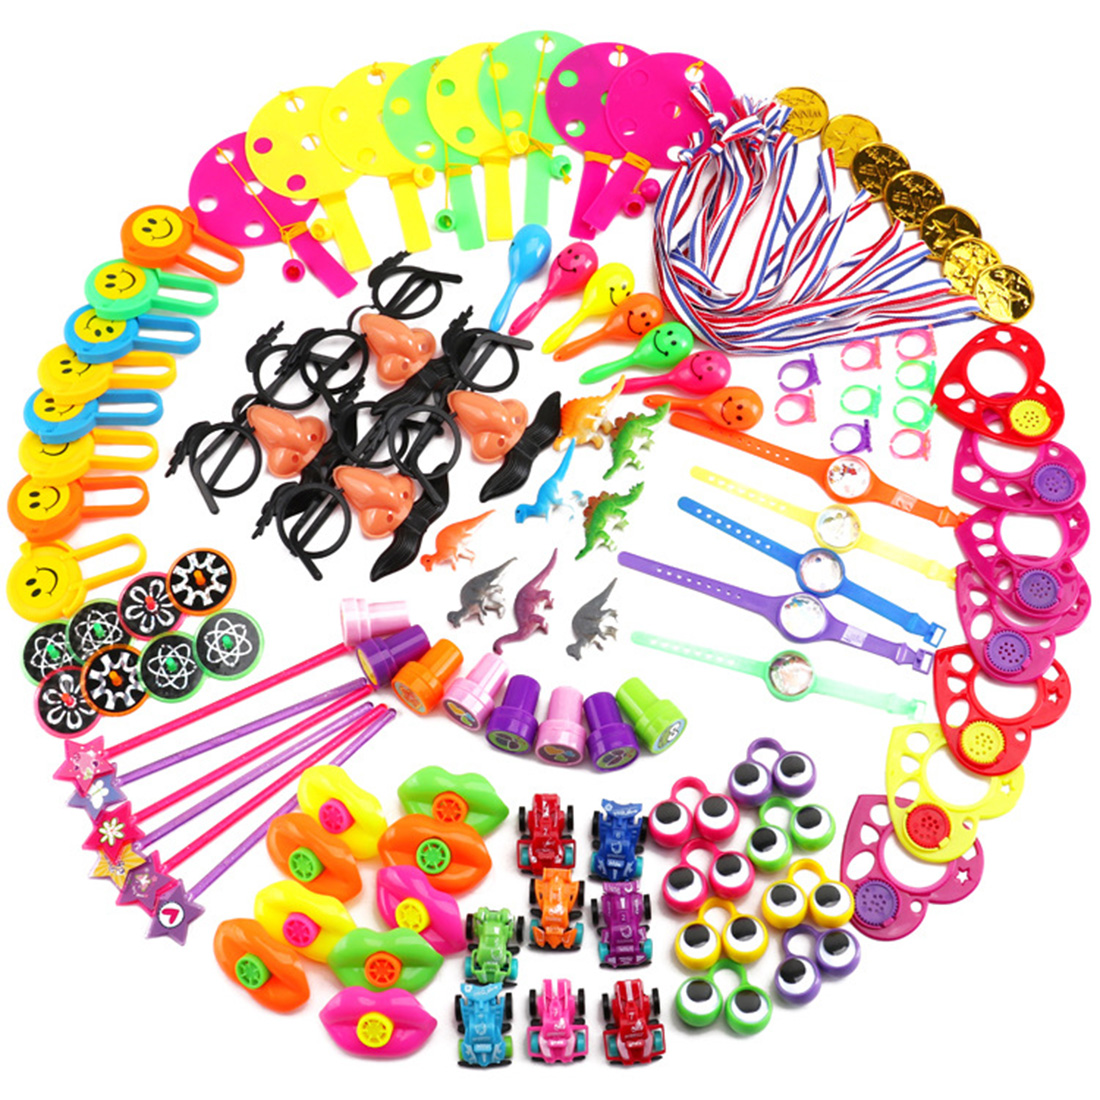 US $17 53 31% OFF|New Popular Colorful 120Pcs/set Children Birthday Party  Giveaways Prizes Assorted Small Toys Gifts Set 2018 Sale-in Party DIY